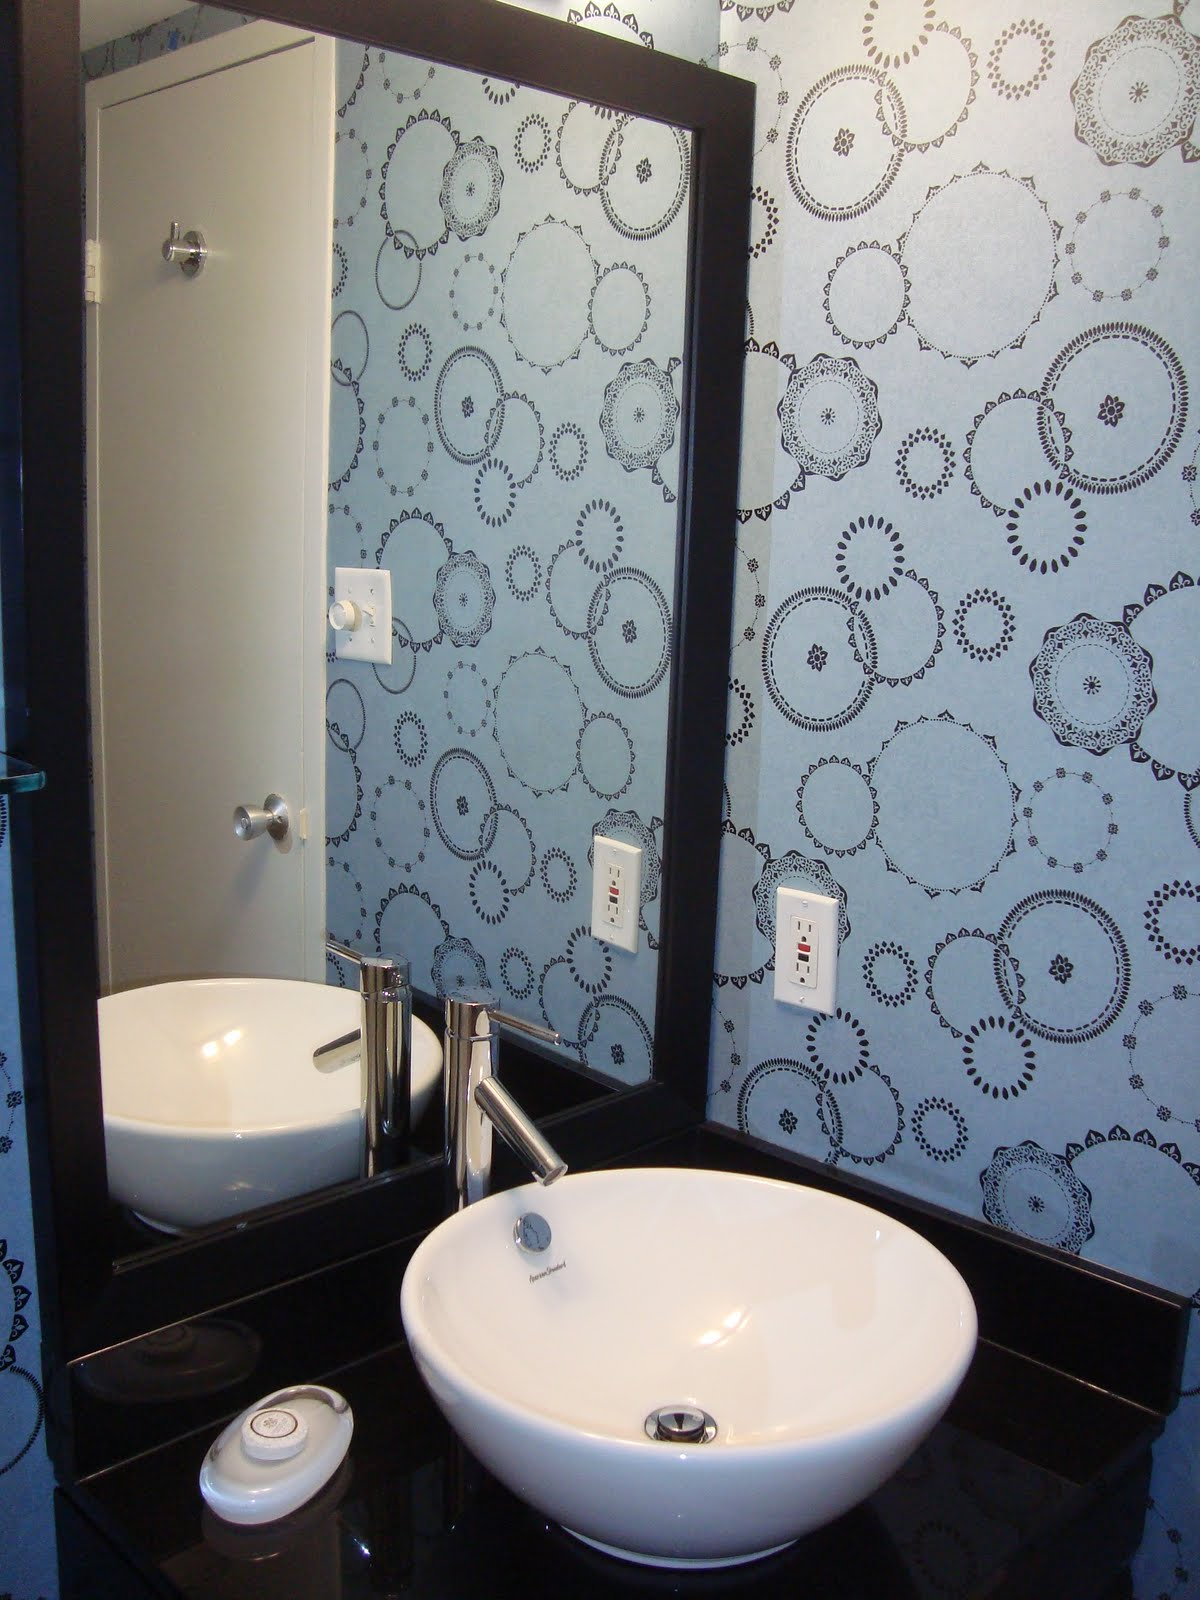 wallpaper ideas for bathrooms 1200x1600